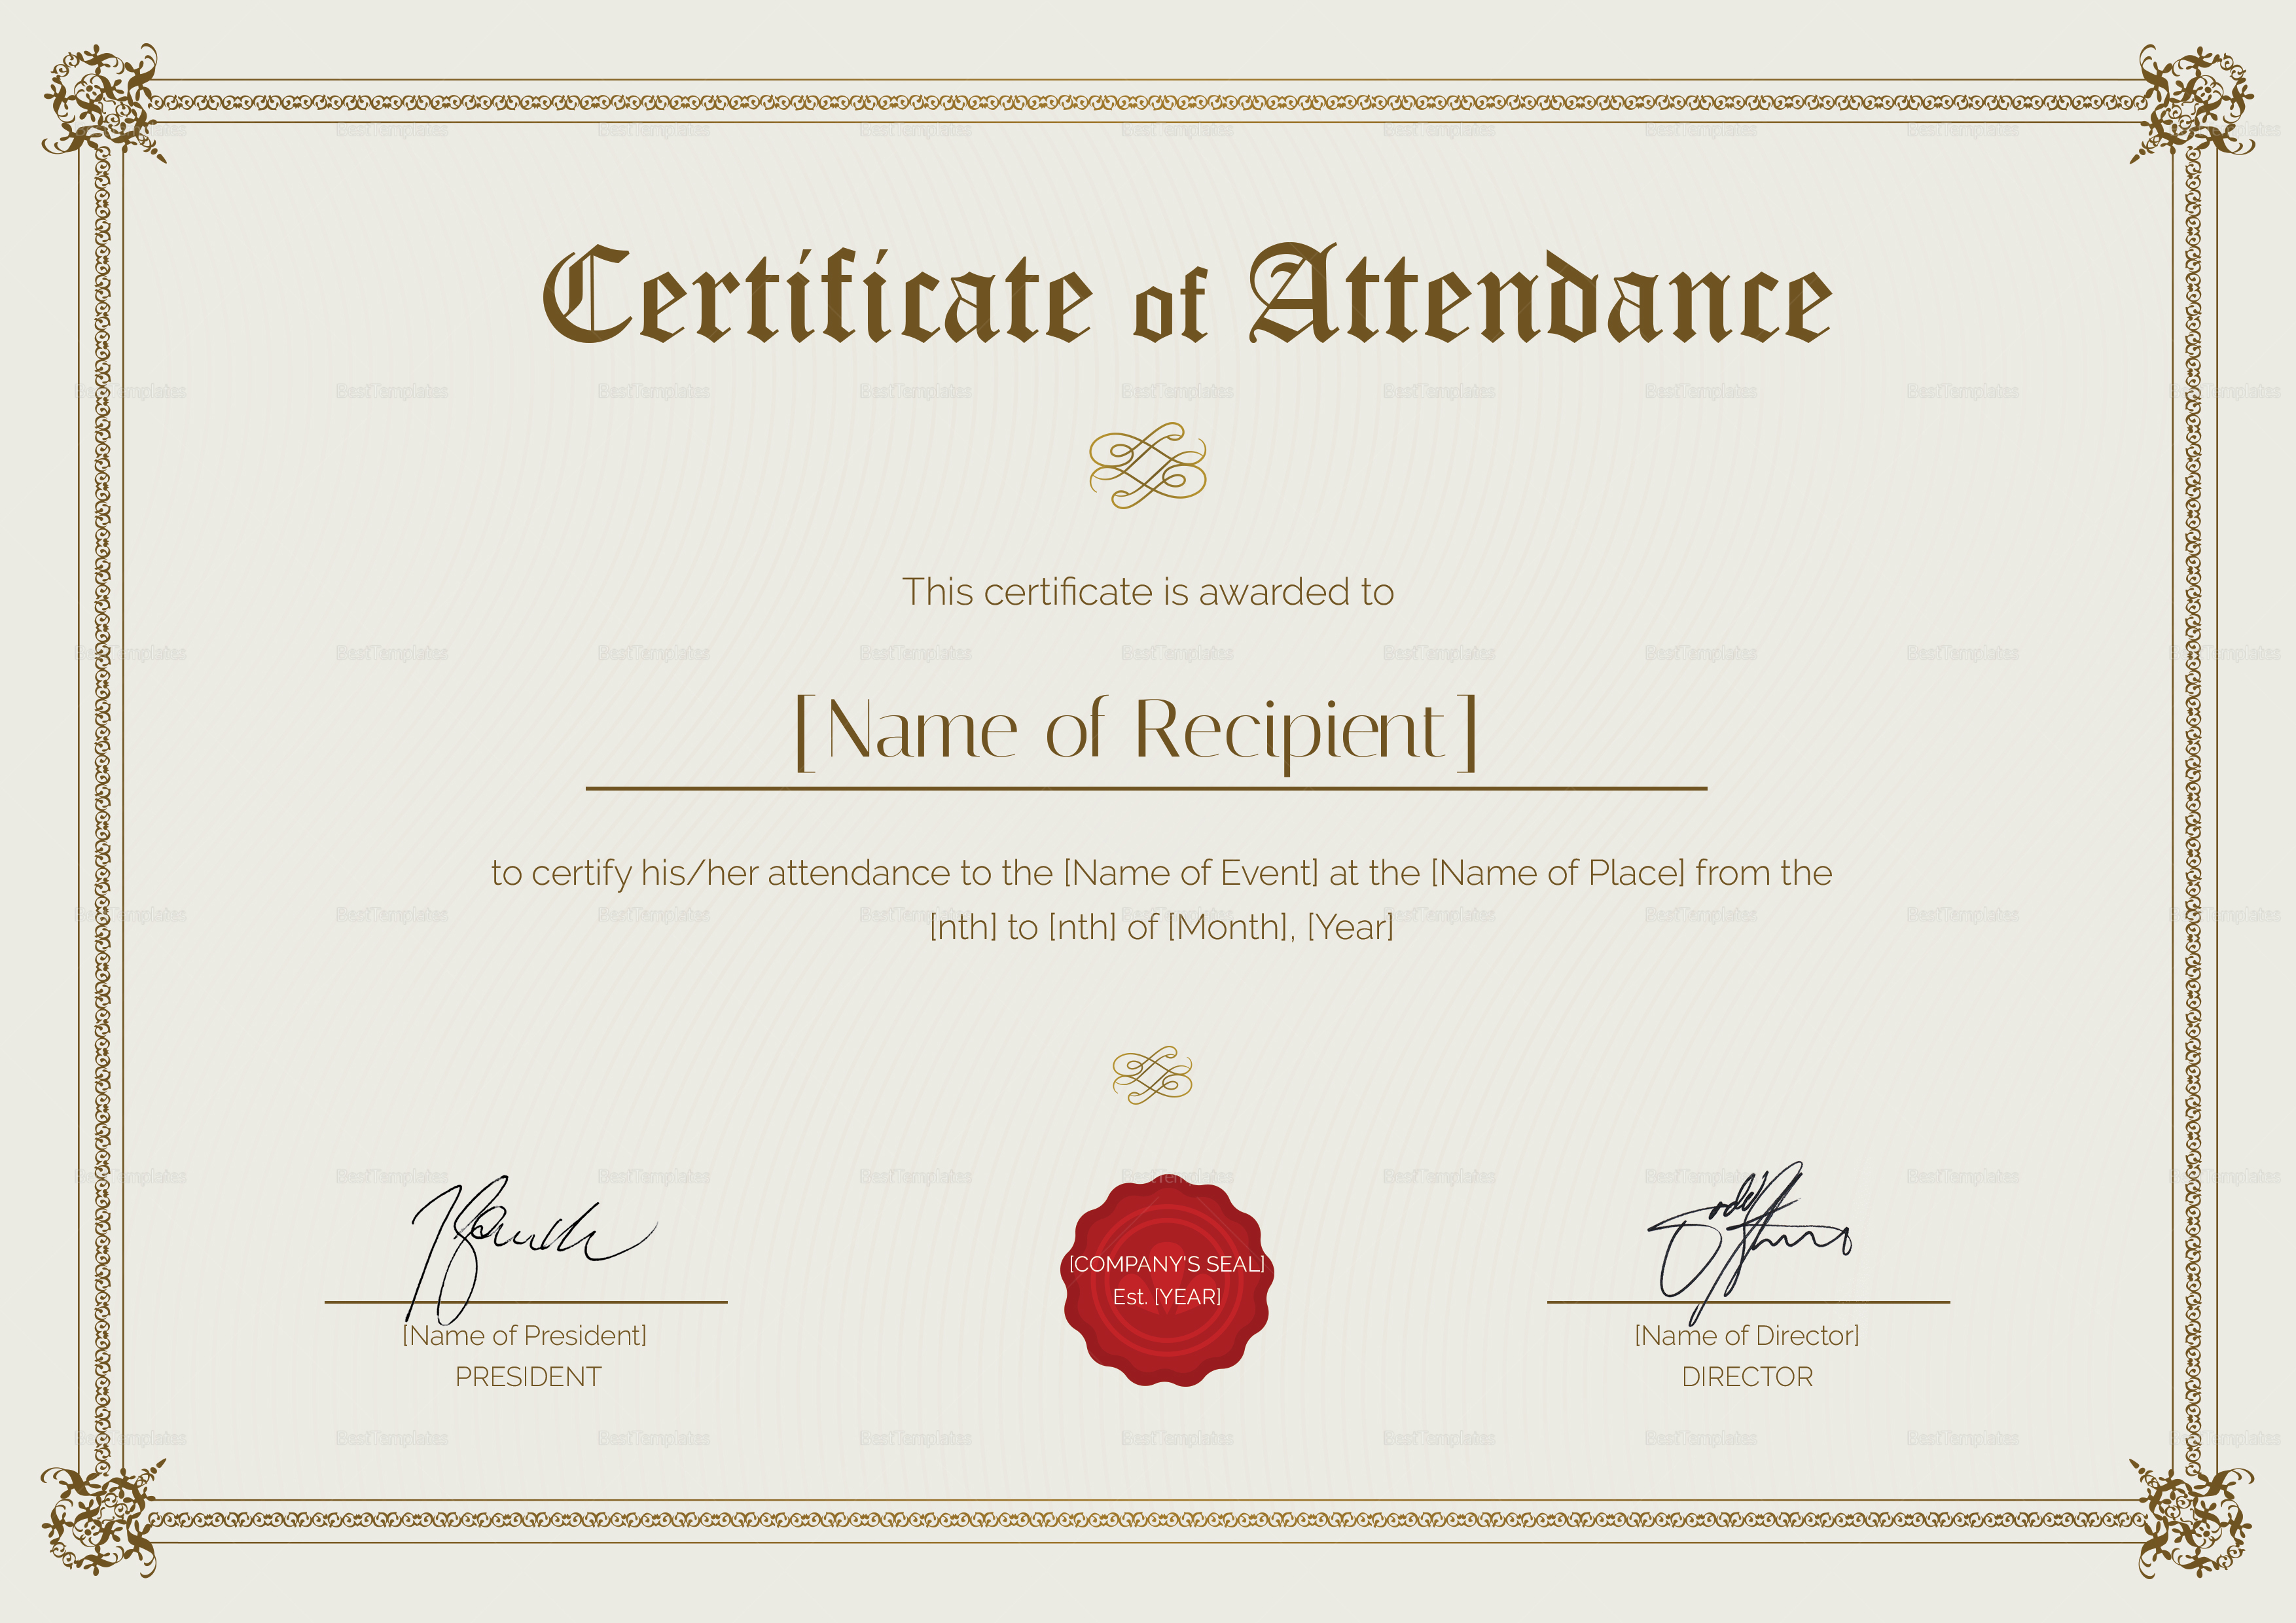 Certificate Of Attendance Design Template In Psd Word